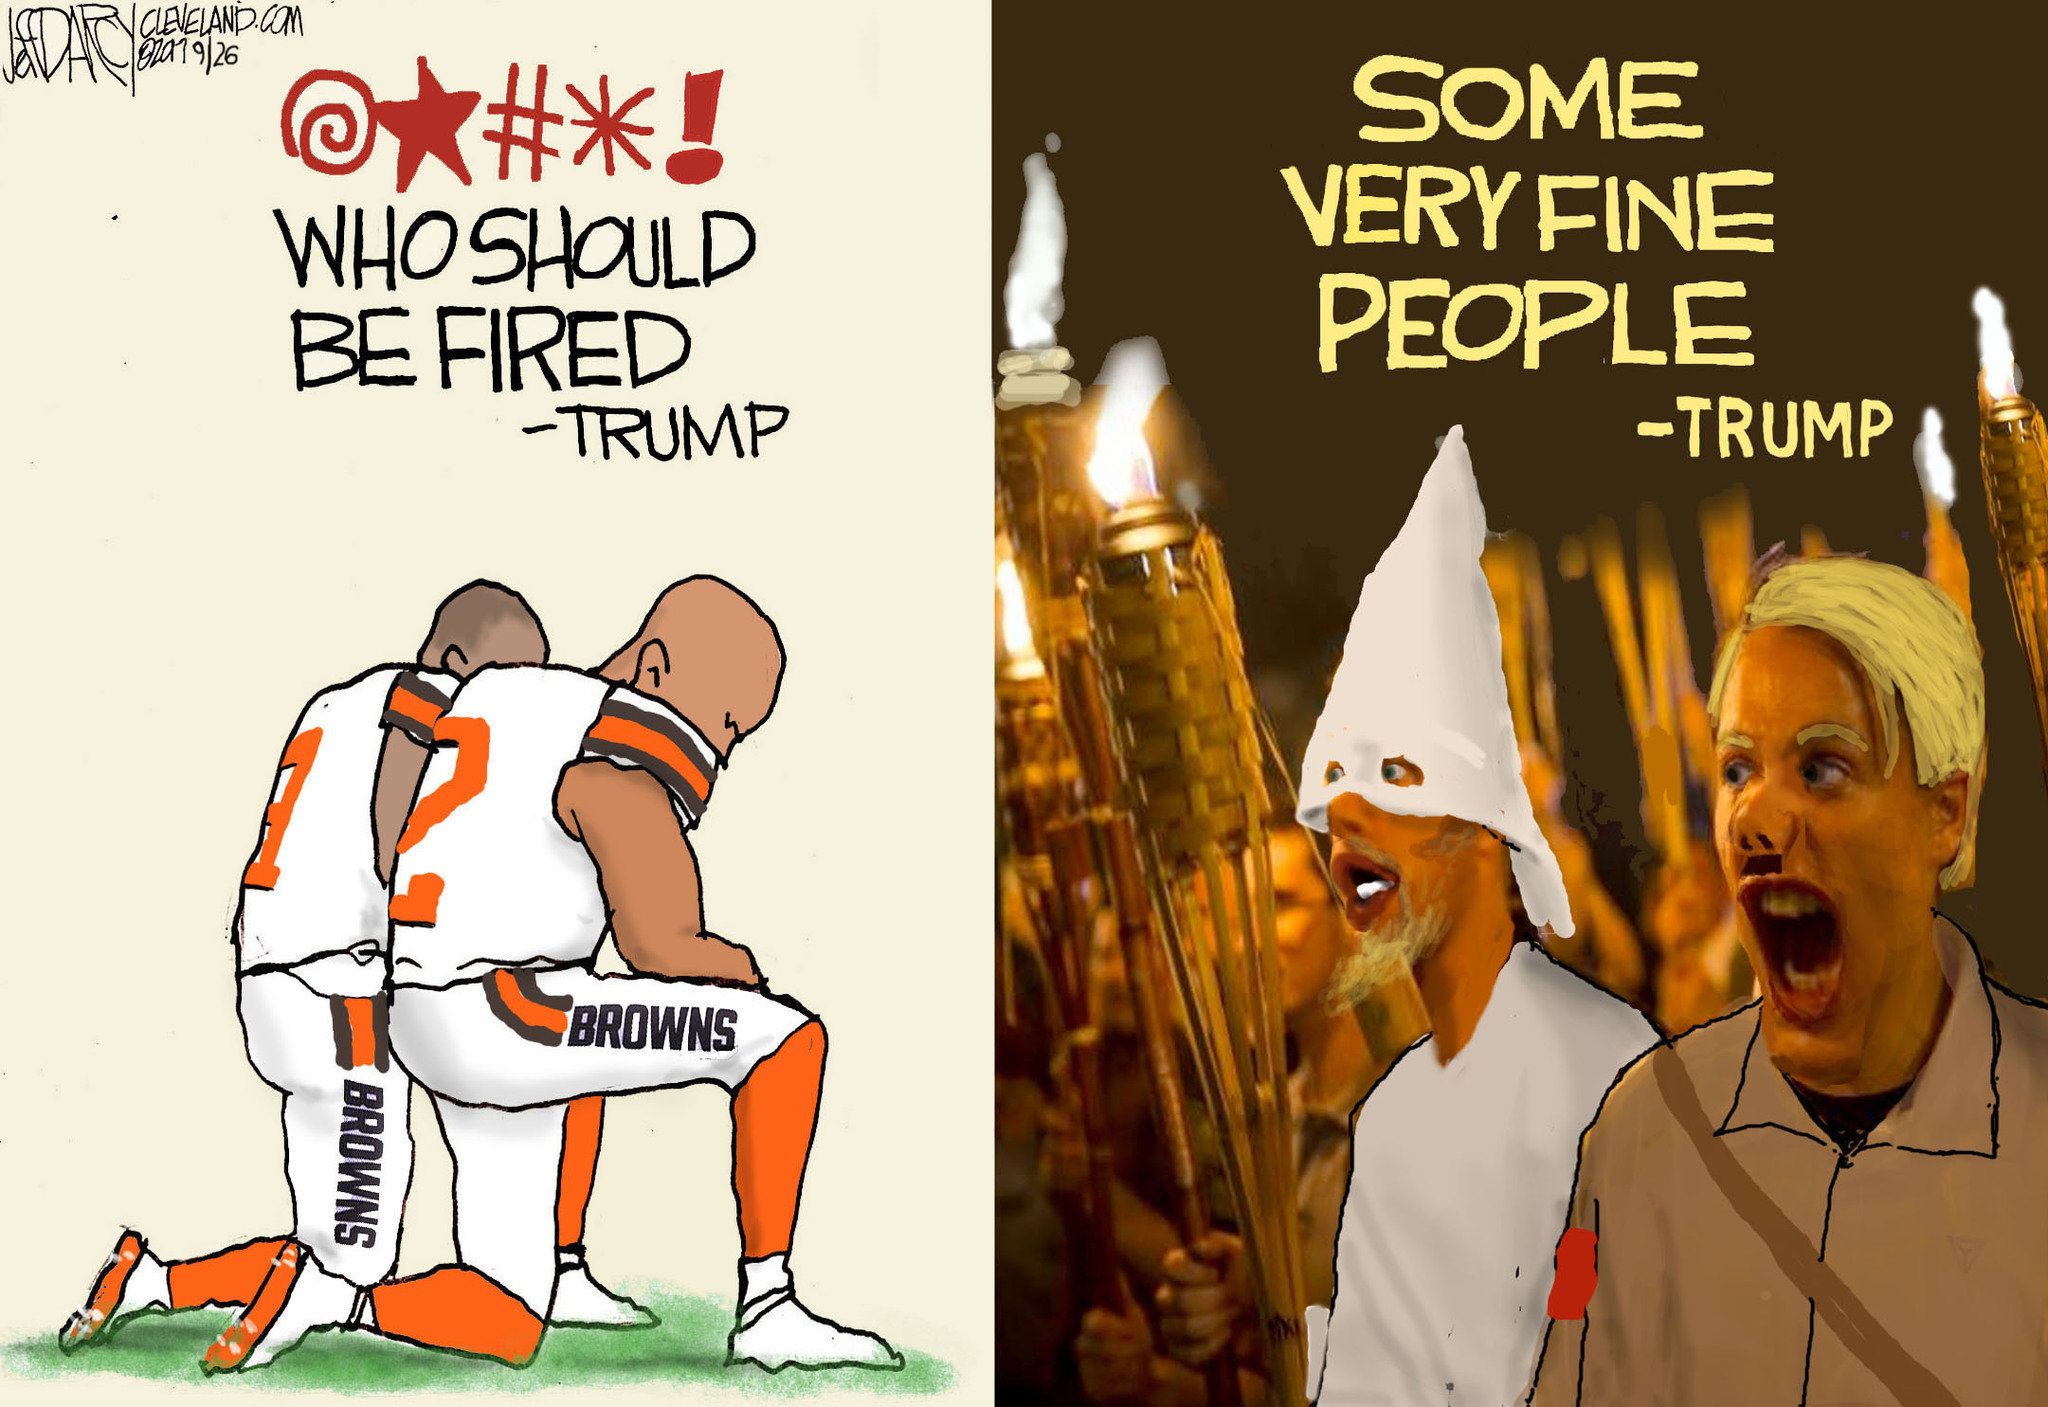 Trump nfl vs kkk.jpg